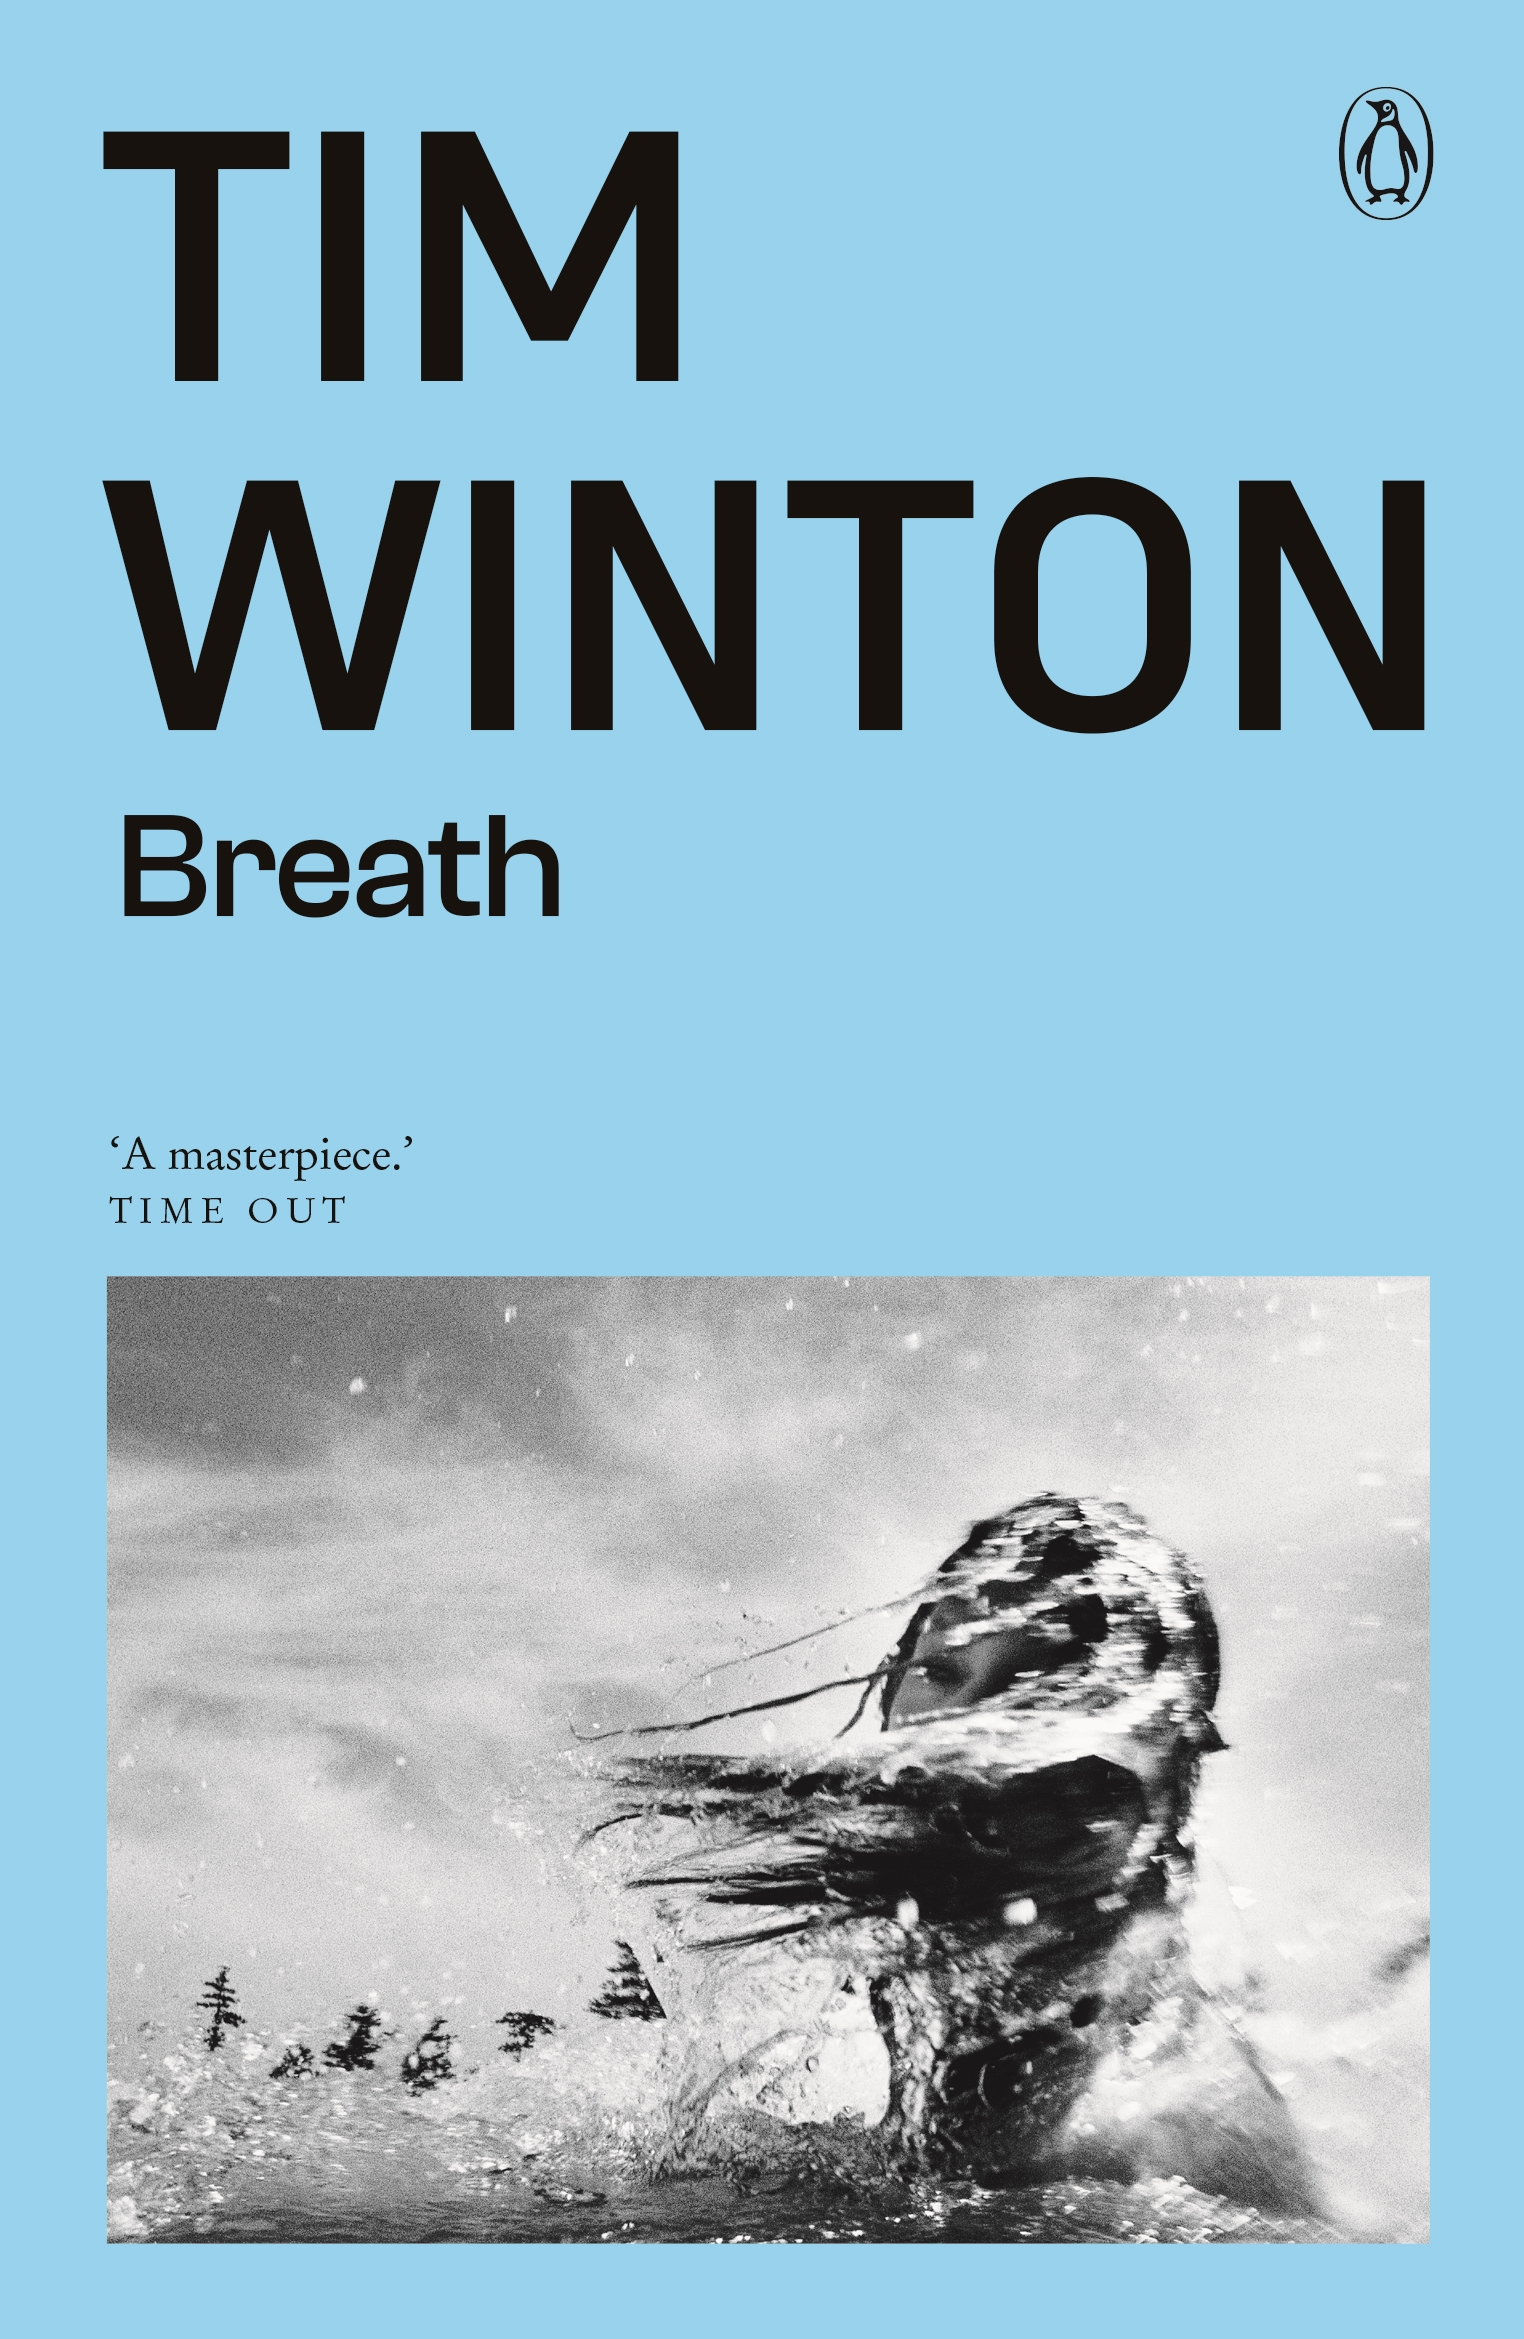 breath tim winton and belonging Strictly ballroom and neighbours by tim winton essay belonging strictly ballroom and neighbours by tim winton essay belonging 1596 words aug 8th, 2012 7 pages show more 2010 hsc area of study belonging  ('looking for alibrandi' and 'breath' by tim winton.